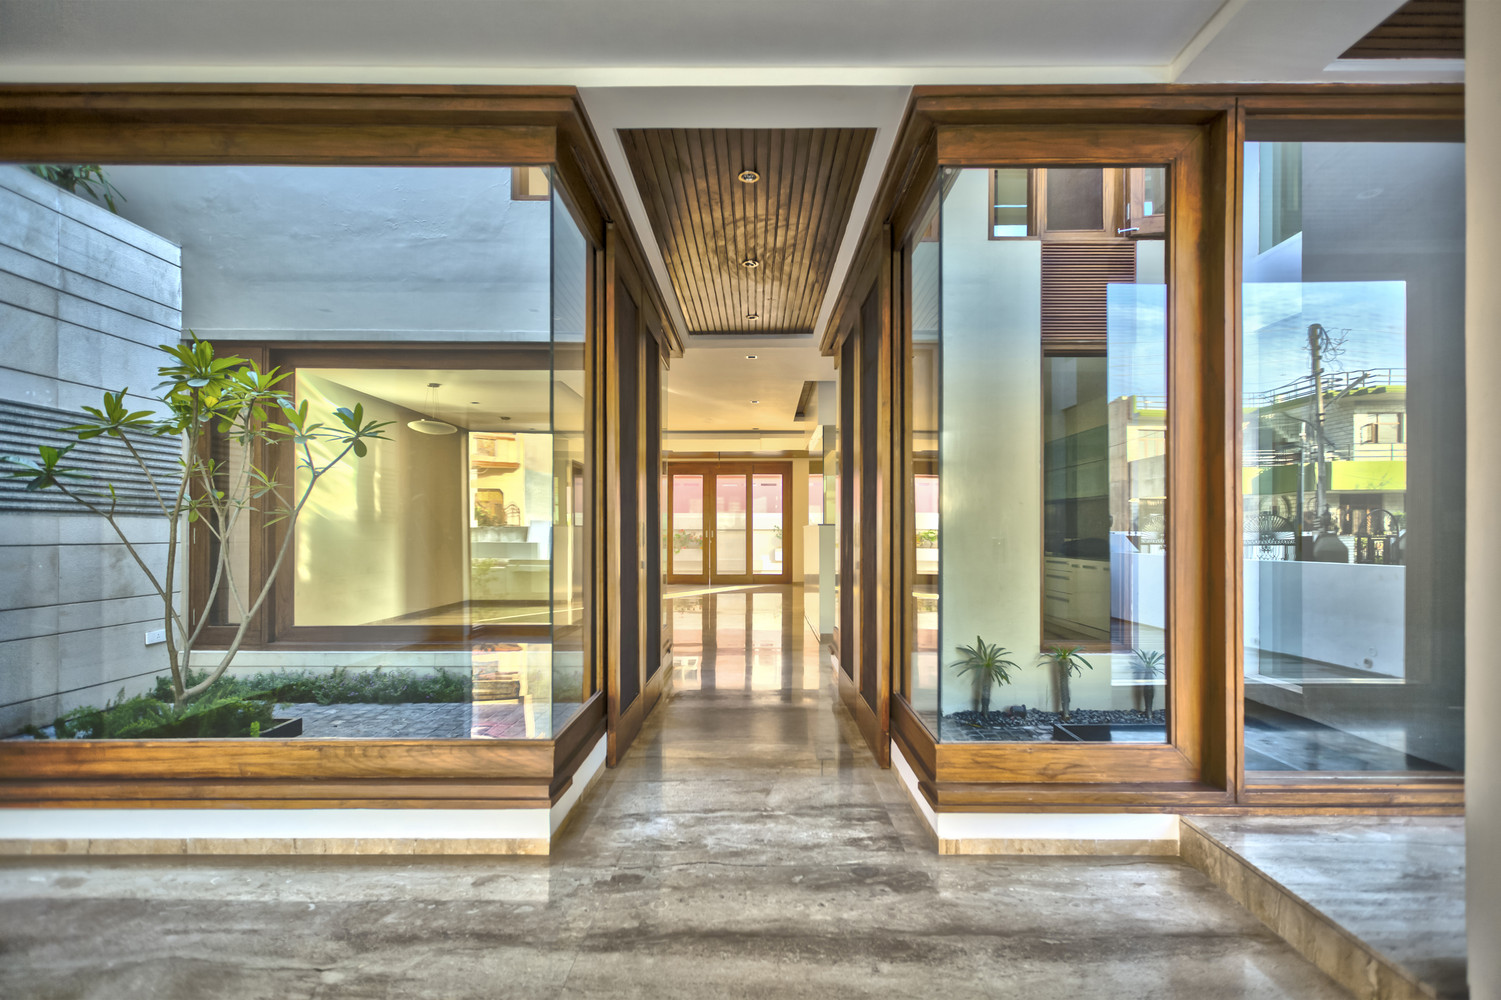 gallery of twin courtyard house charged voids 1 twin courtyard house purnesh dev nikhanj